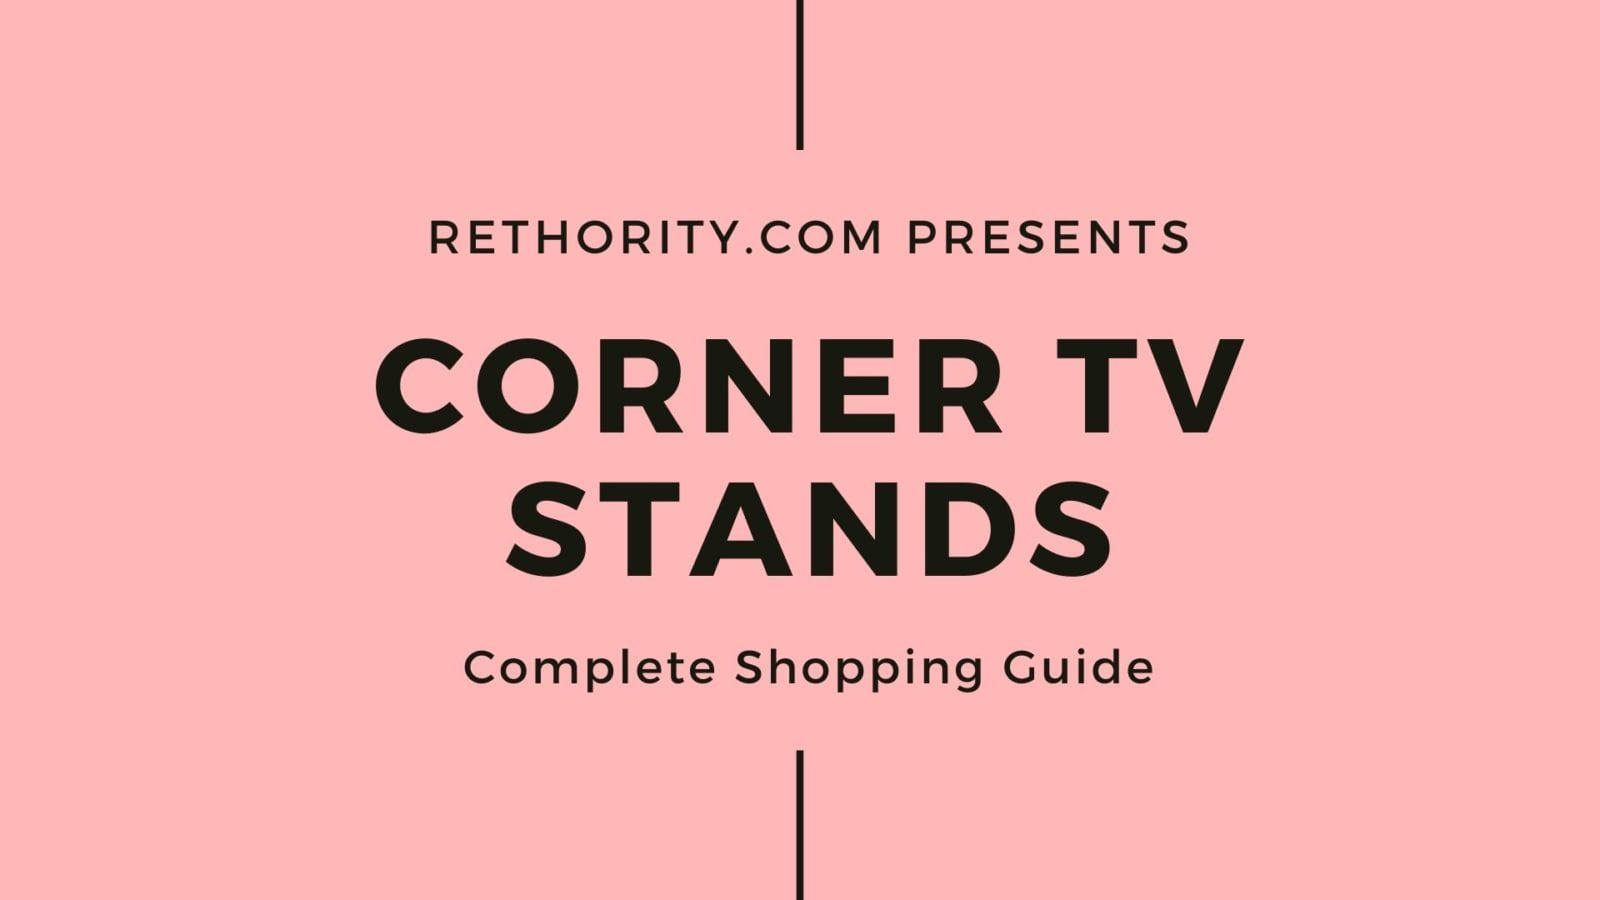 Corner TV Stand shopping guide graphic against salmon red background